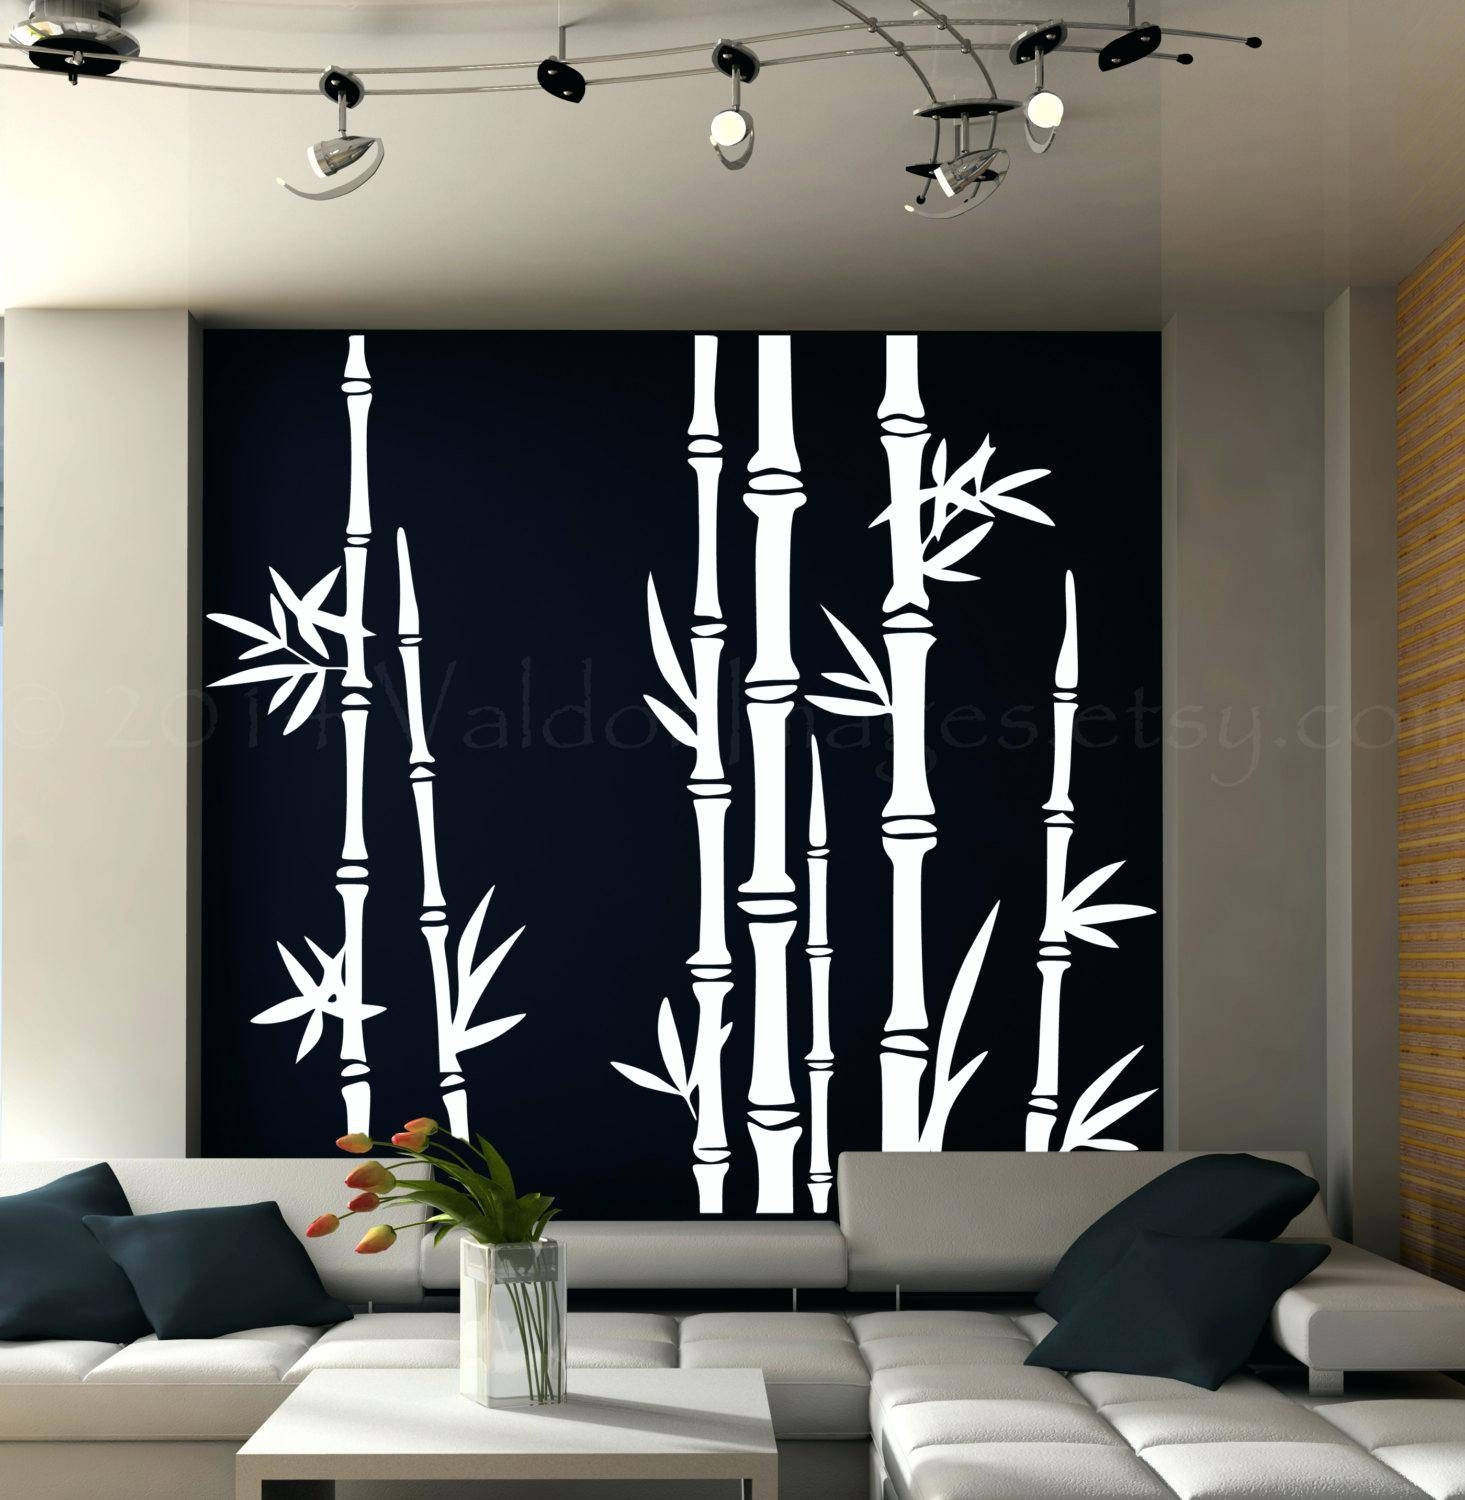 30 inspirations of asian metal wall art. Black Bedroom Furniture Sets. Home Design Ideas